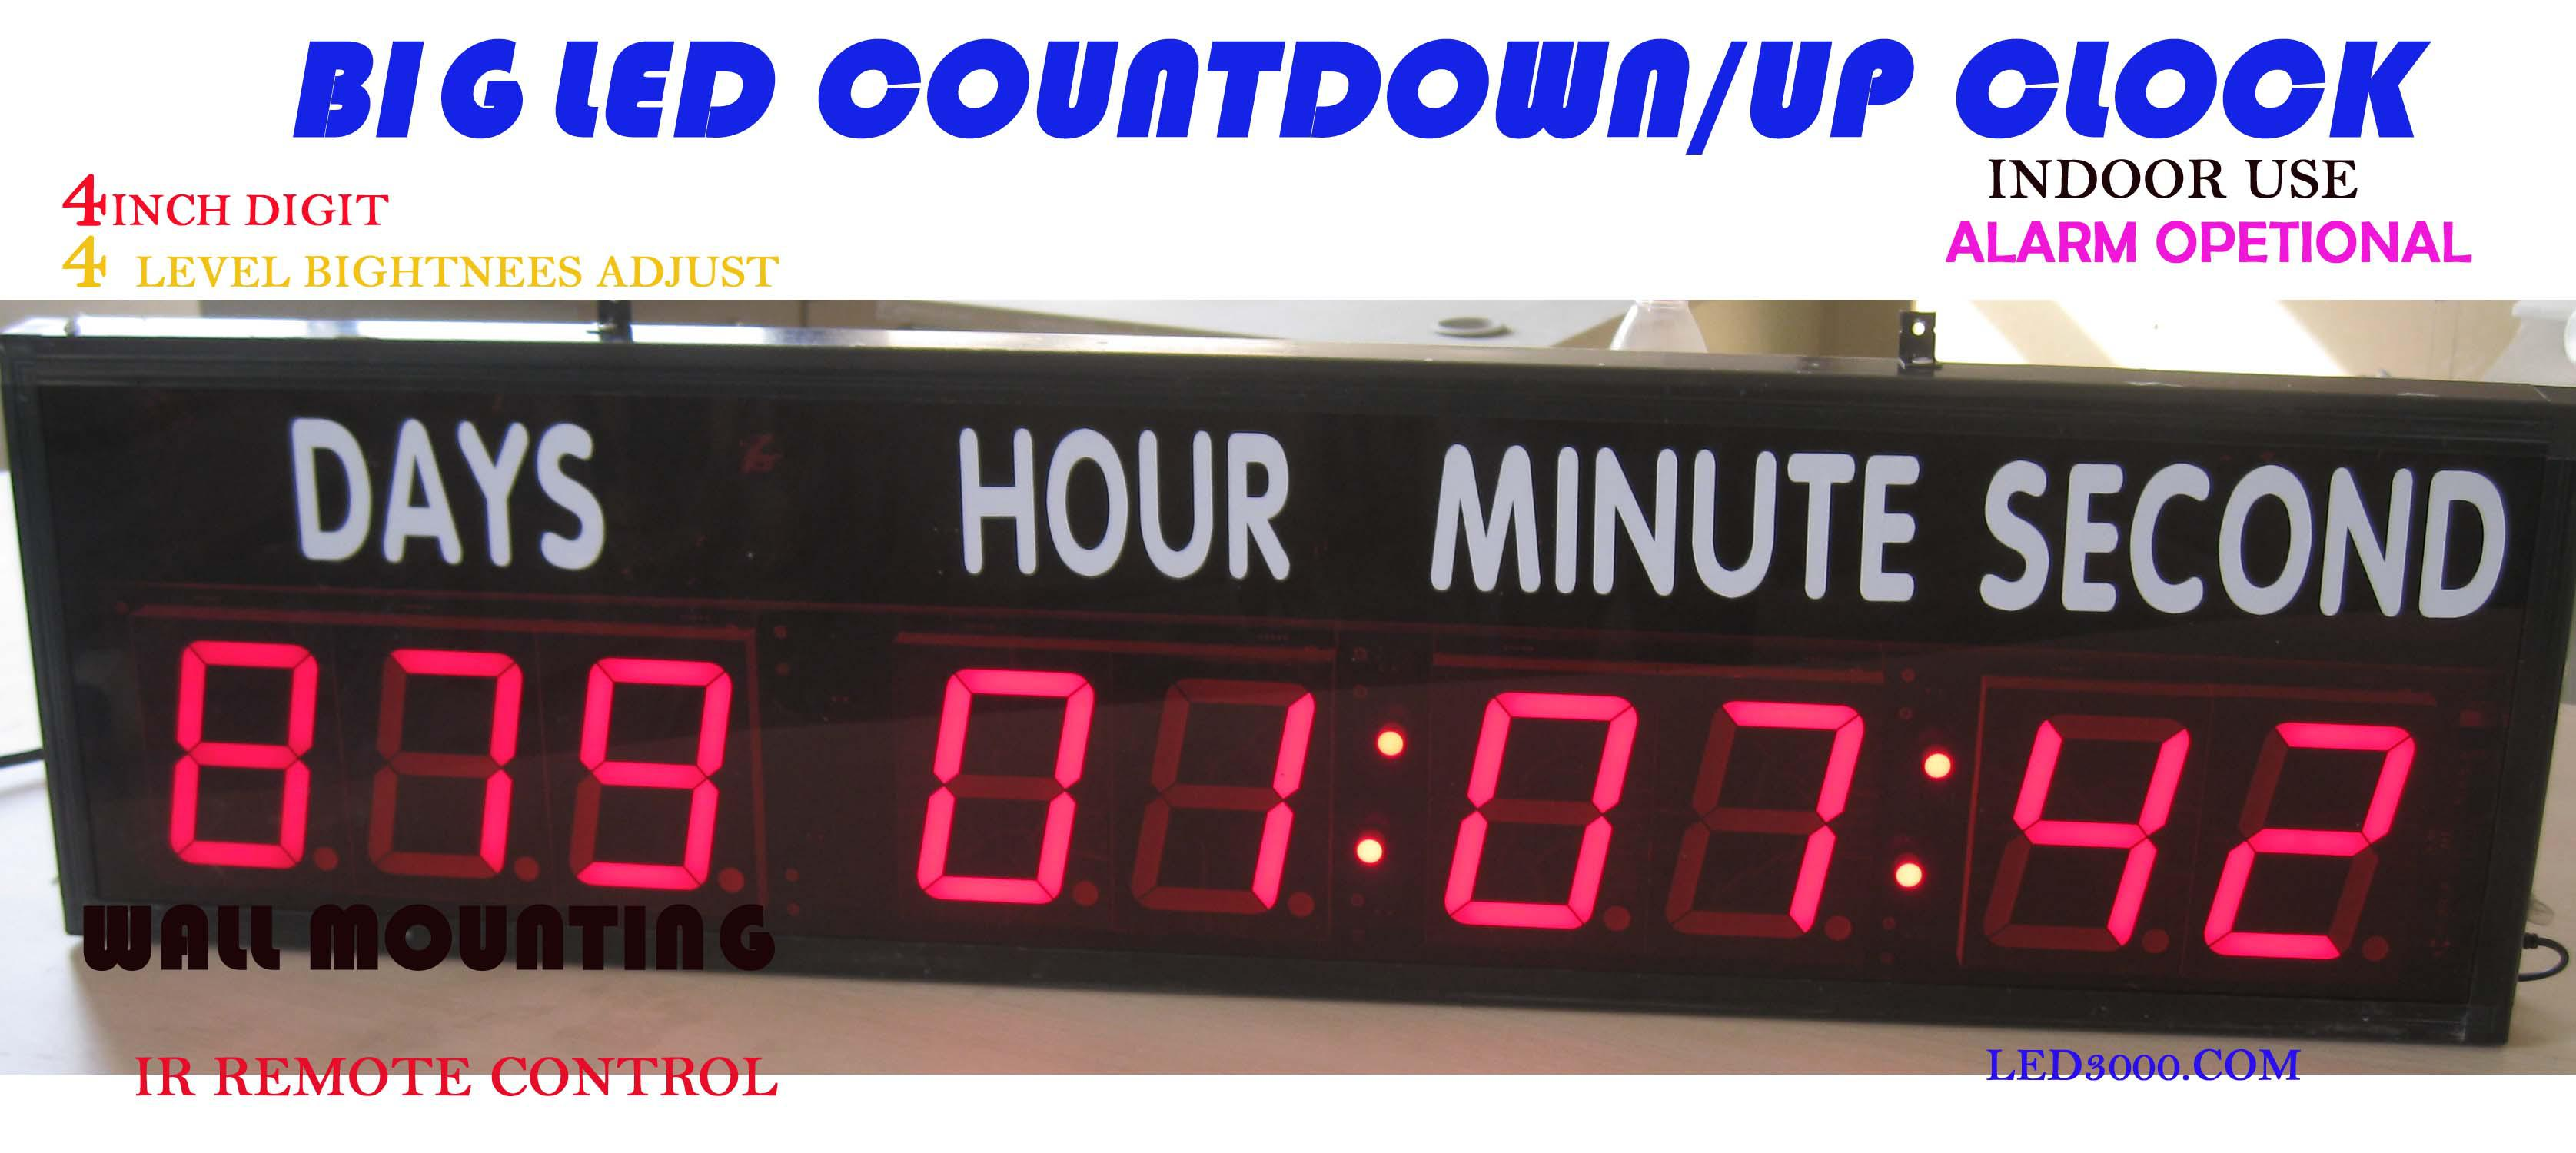 Big Size Dayshoursminutes And Seconds Countdown Up Clock Led Timer Activities Research And Development Production Target C P16 Led Display Perimeter Led